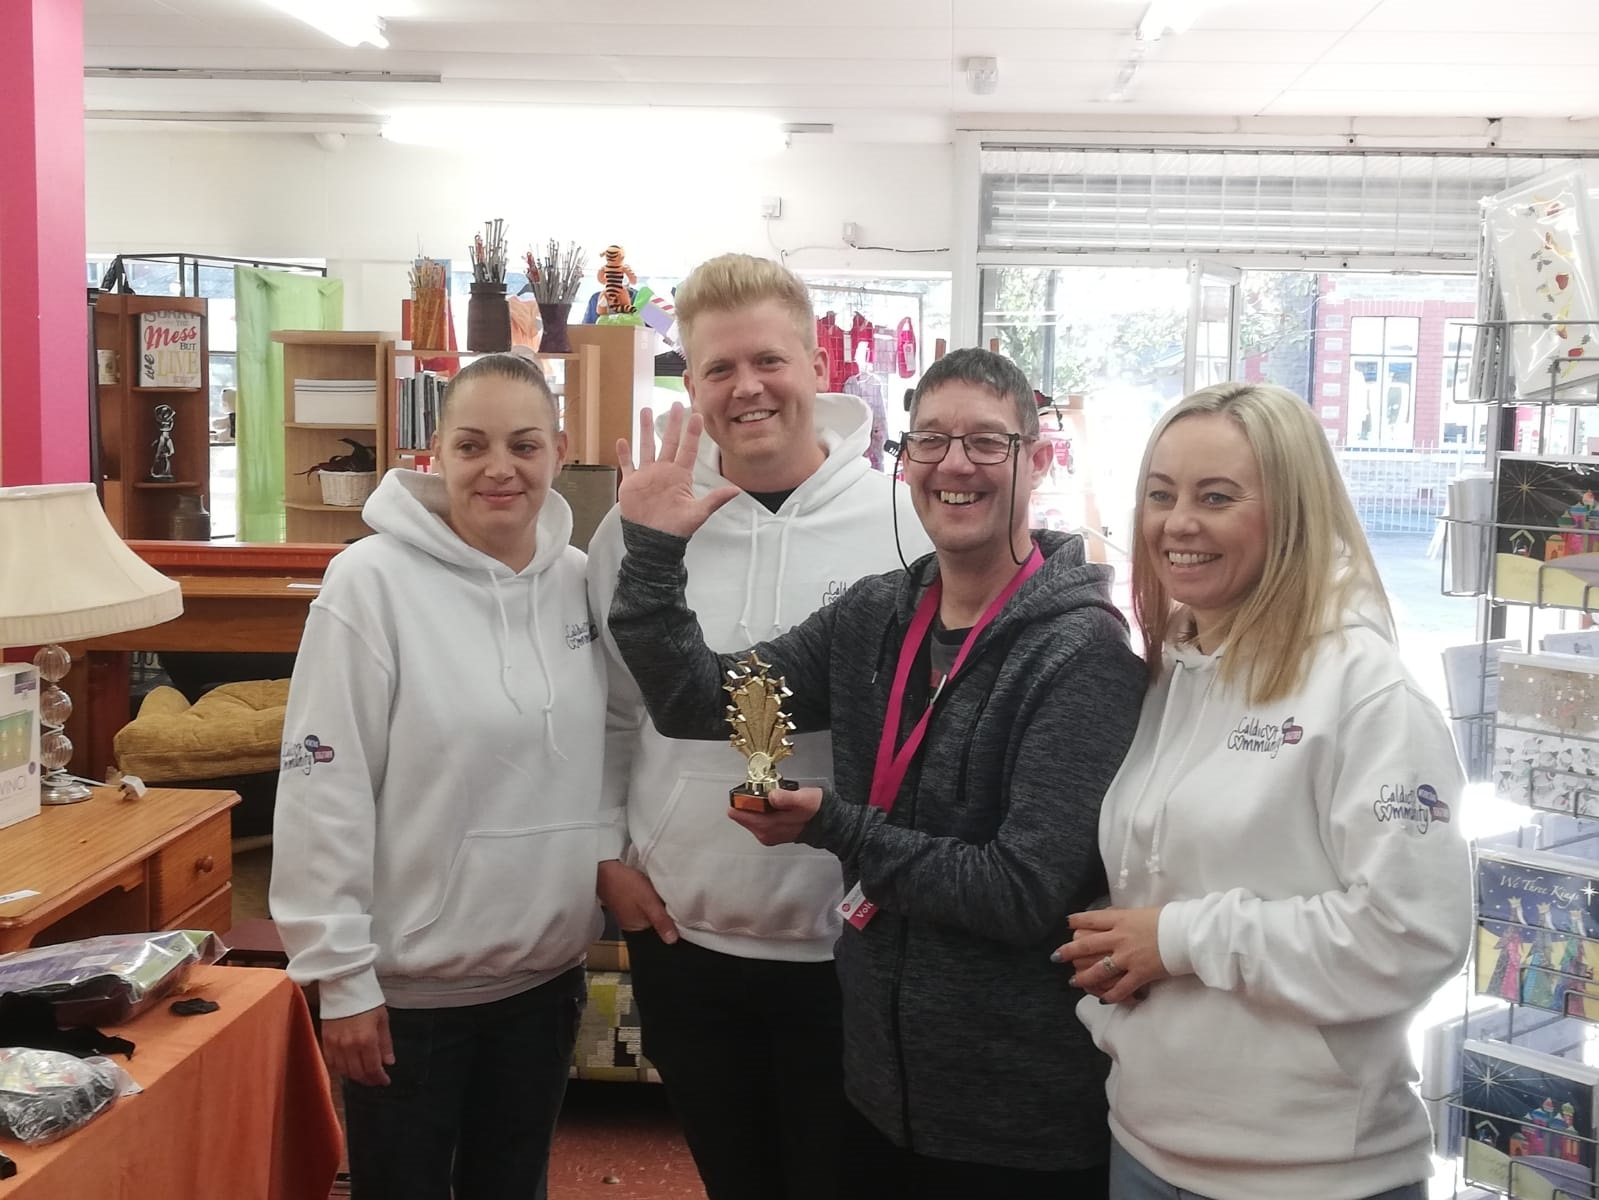 Dean Baker (third from left) after being presented with his trophy by the Caldicot Community Working Together team, from left, Rachel Grumbach, Mathew Clements, and Rachel Furmage